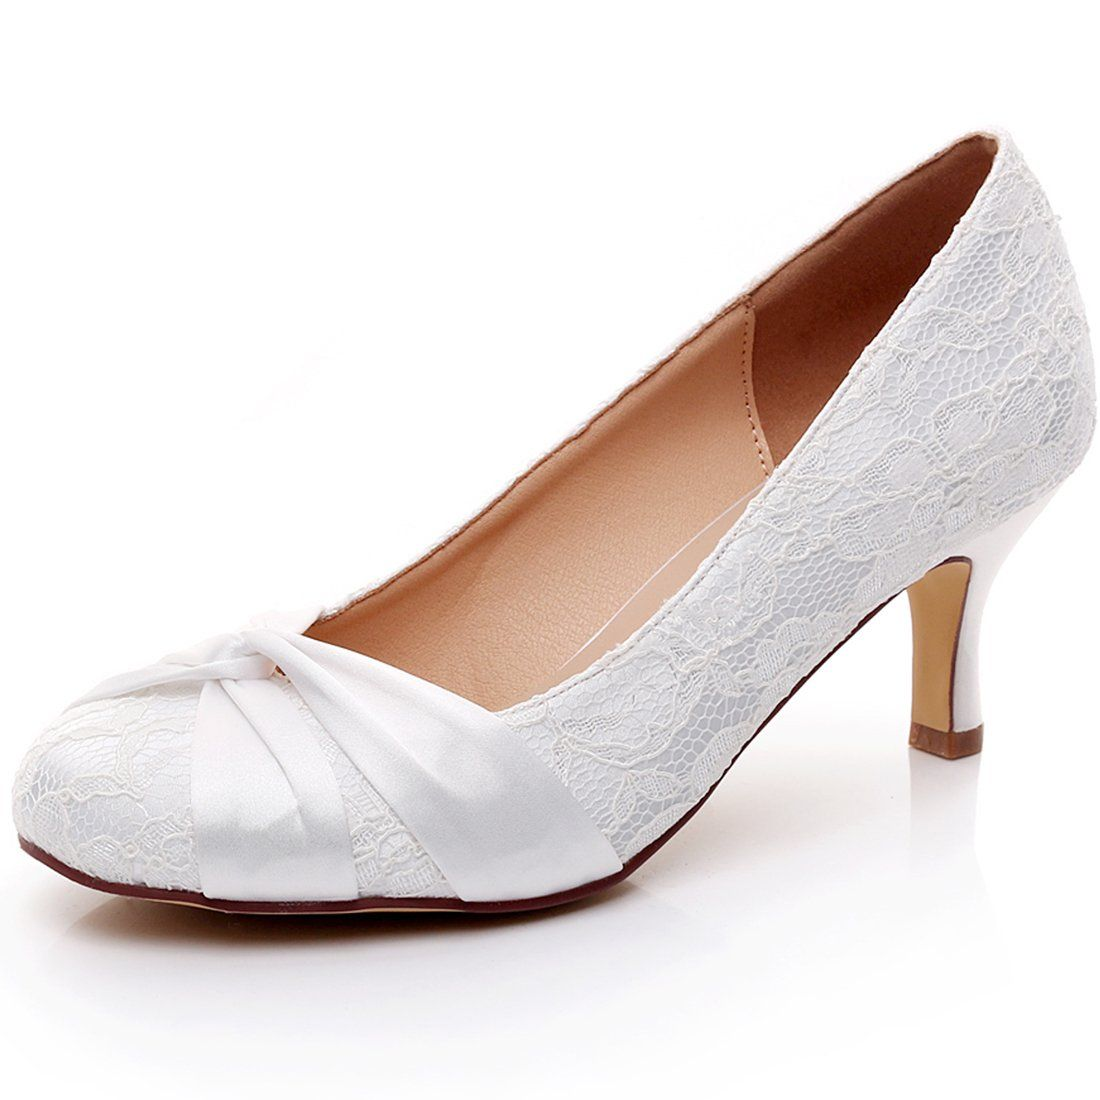 LUXVEER Fashion Lace Wedding Shoes